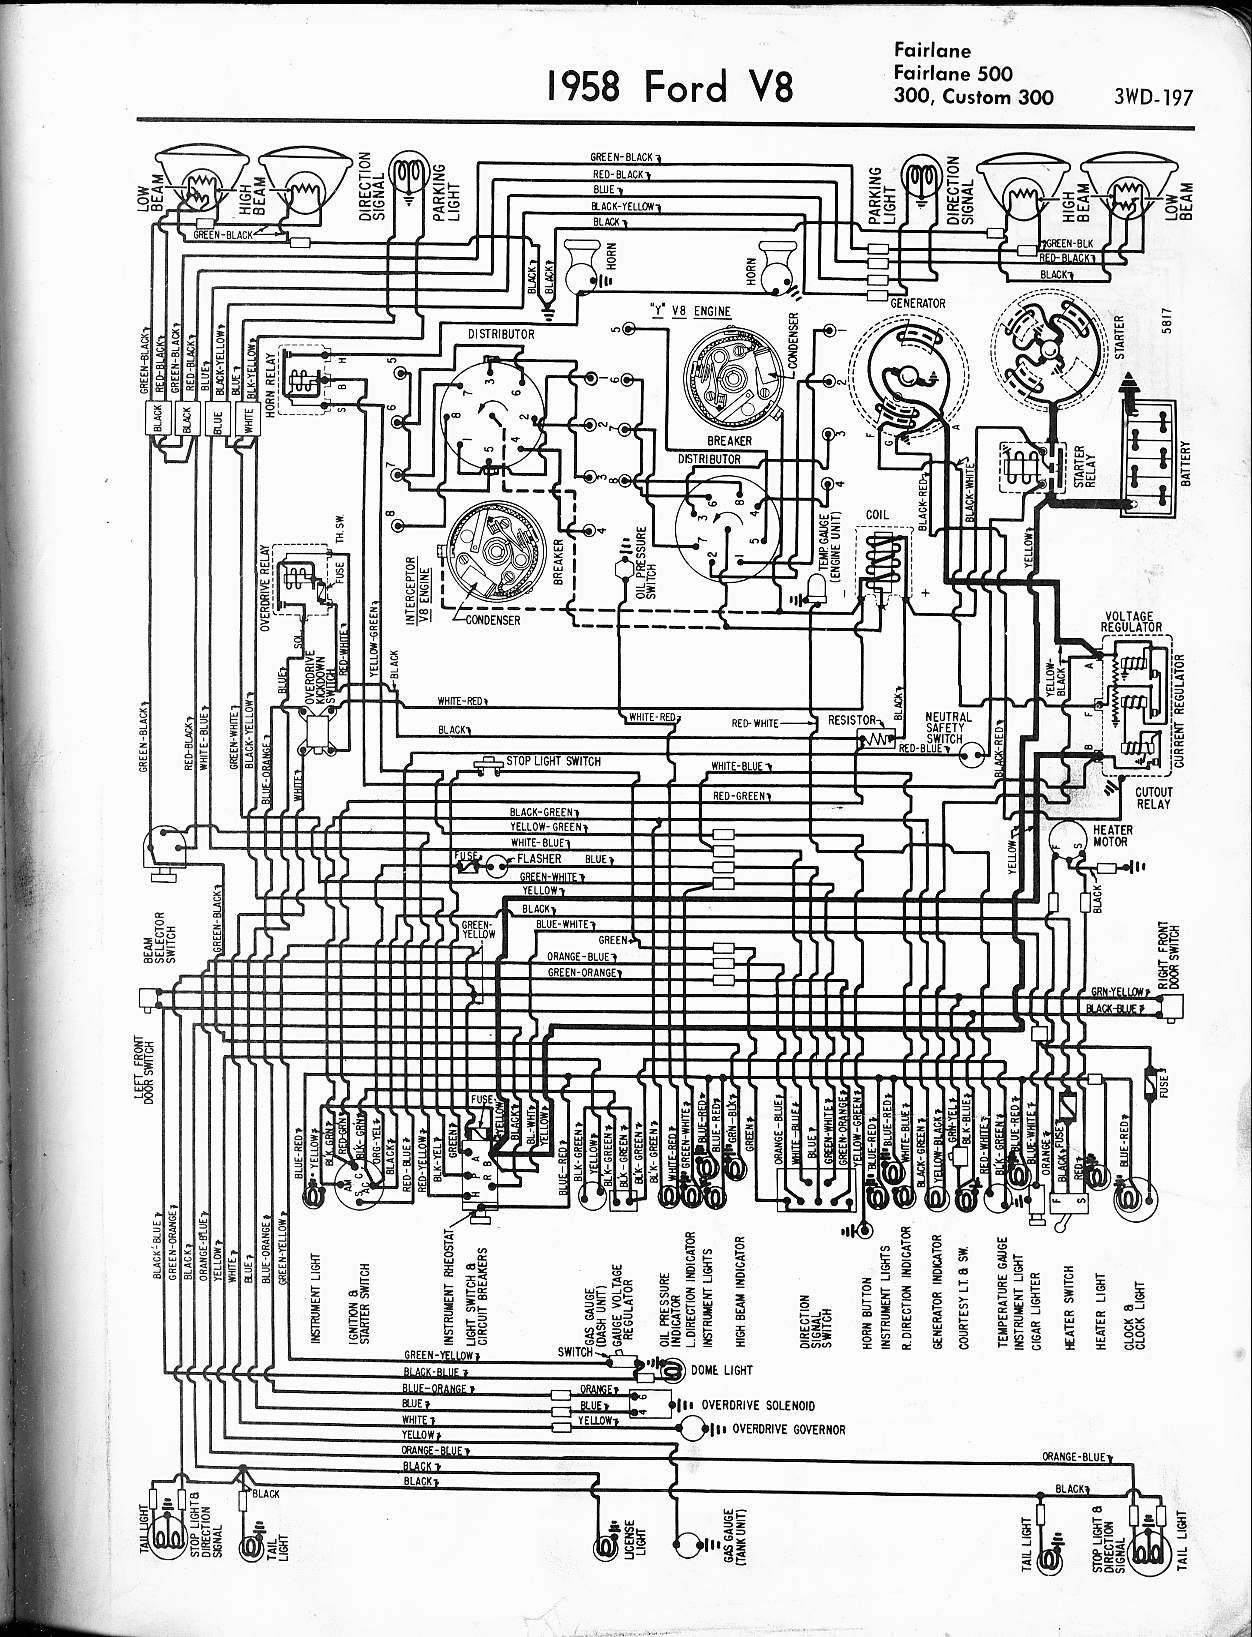 21 Best Sample Of Ford Wiring Diagrams Samples Https Bacamajalah Com 21 Best Sample Of Ford Wiring Diagrams S Diagram Design Diagram Trailer Wiring Diagram